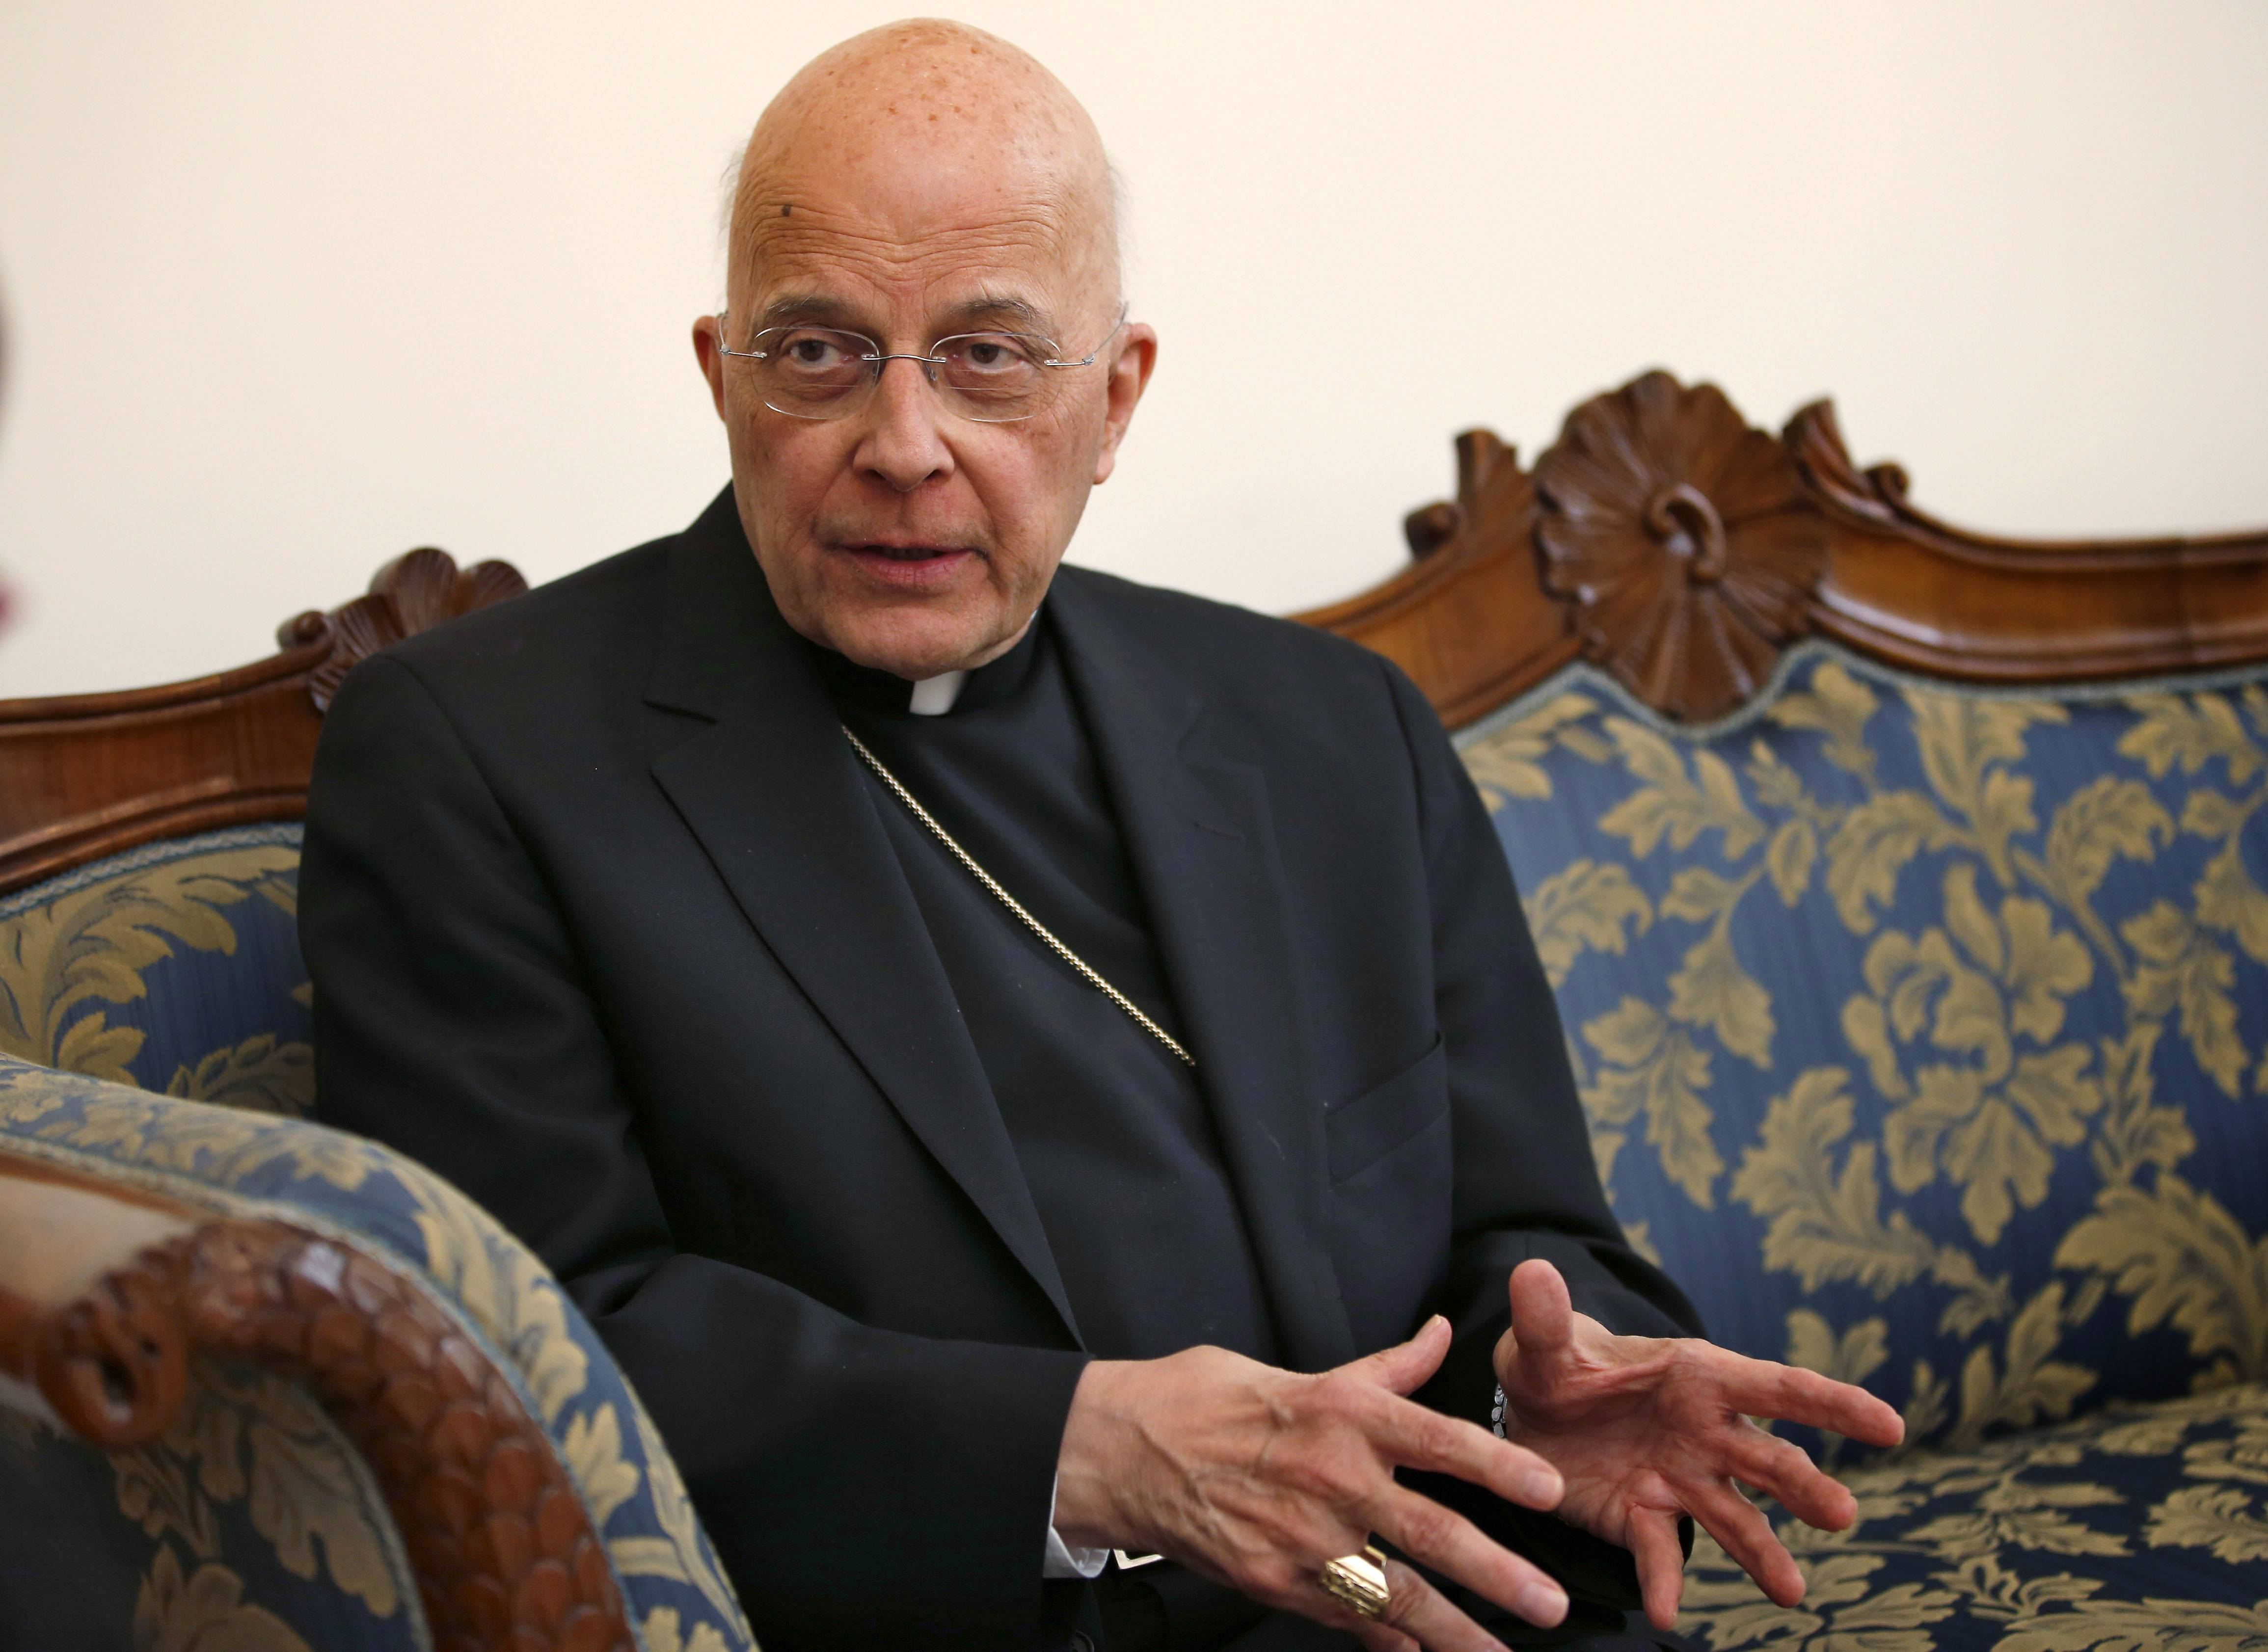 Cardinal Francis George in a 2013 file photo.